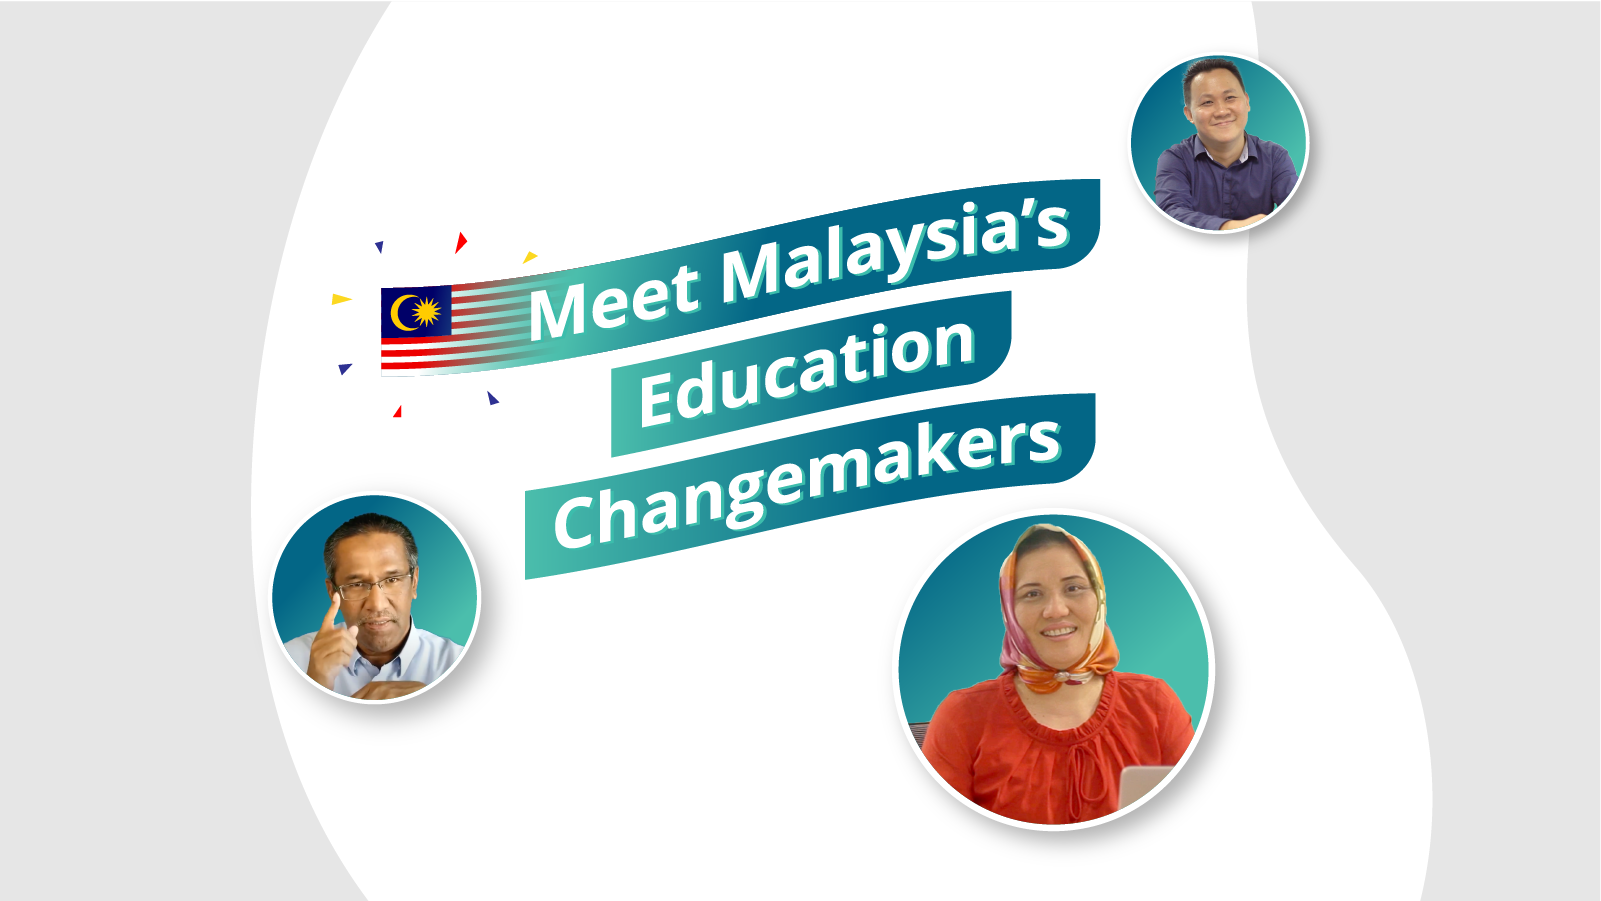 Meet Malaysia's Education Changemakers